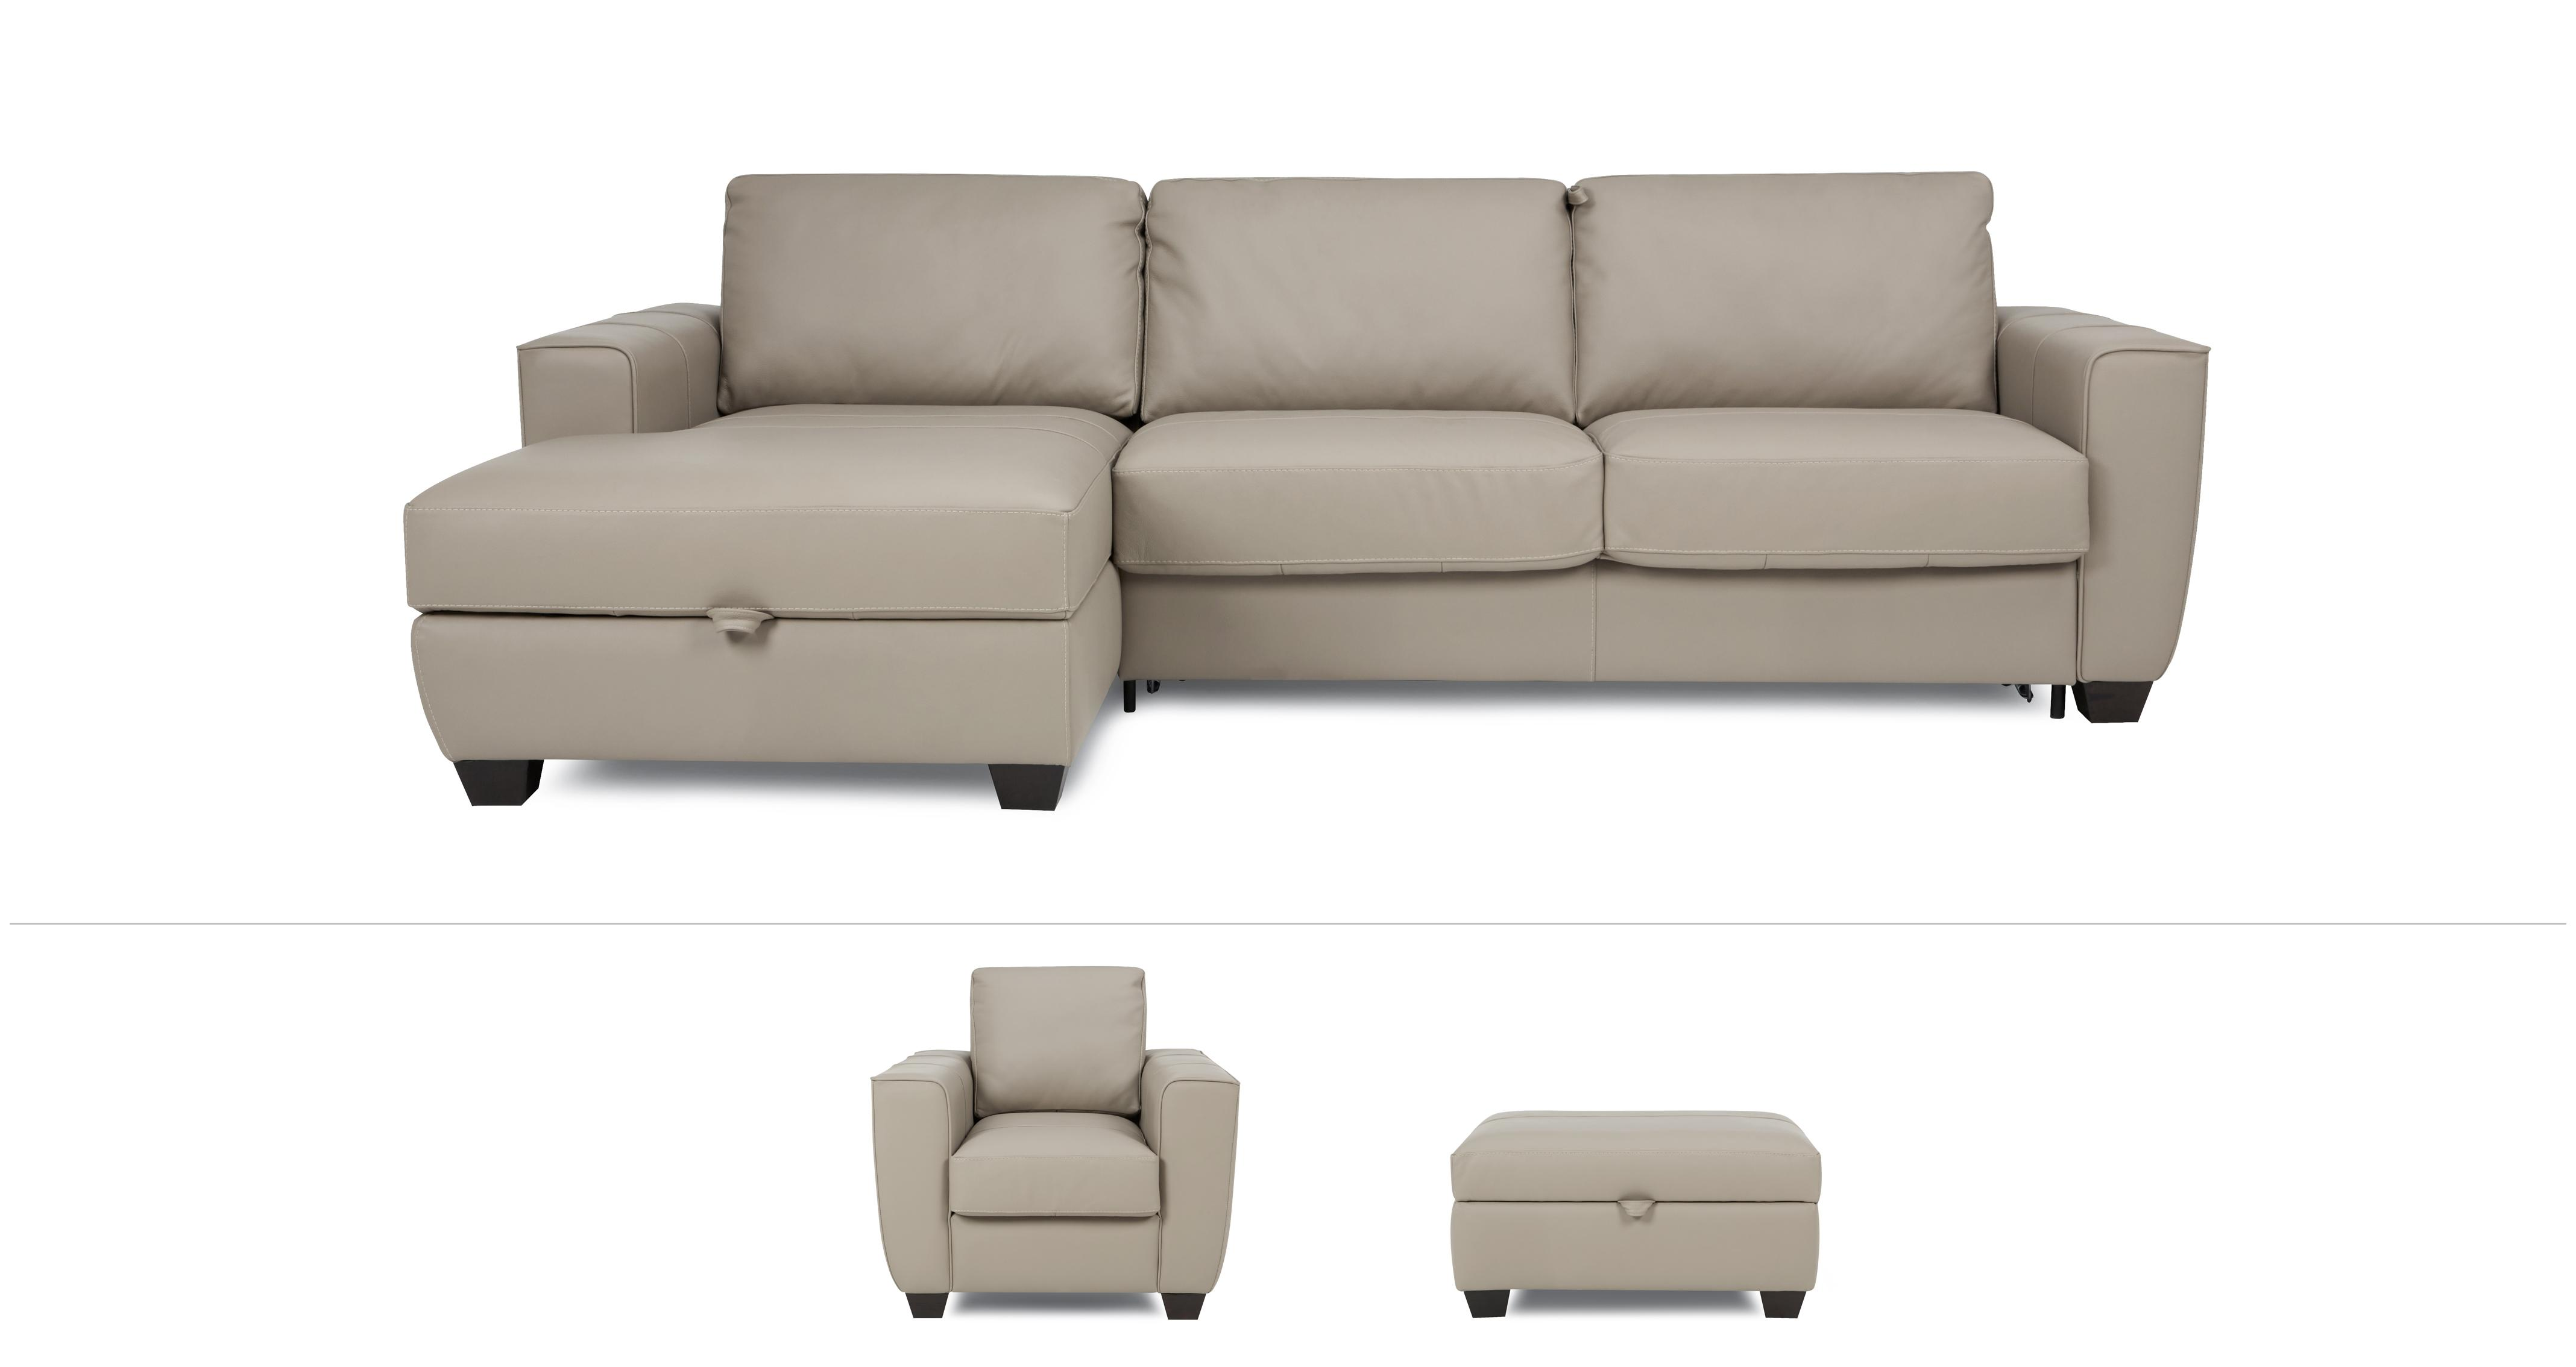 large chaise sofa dfs blanket to cover otto clearance left hand facing storage bed